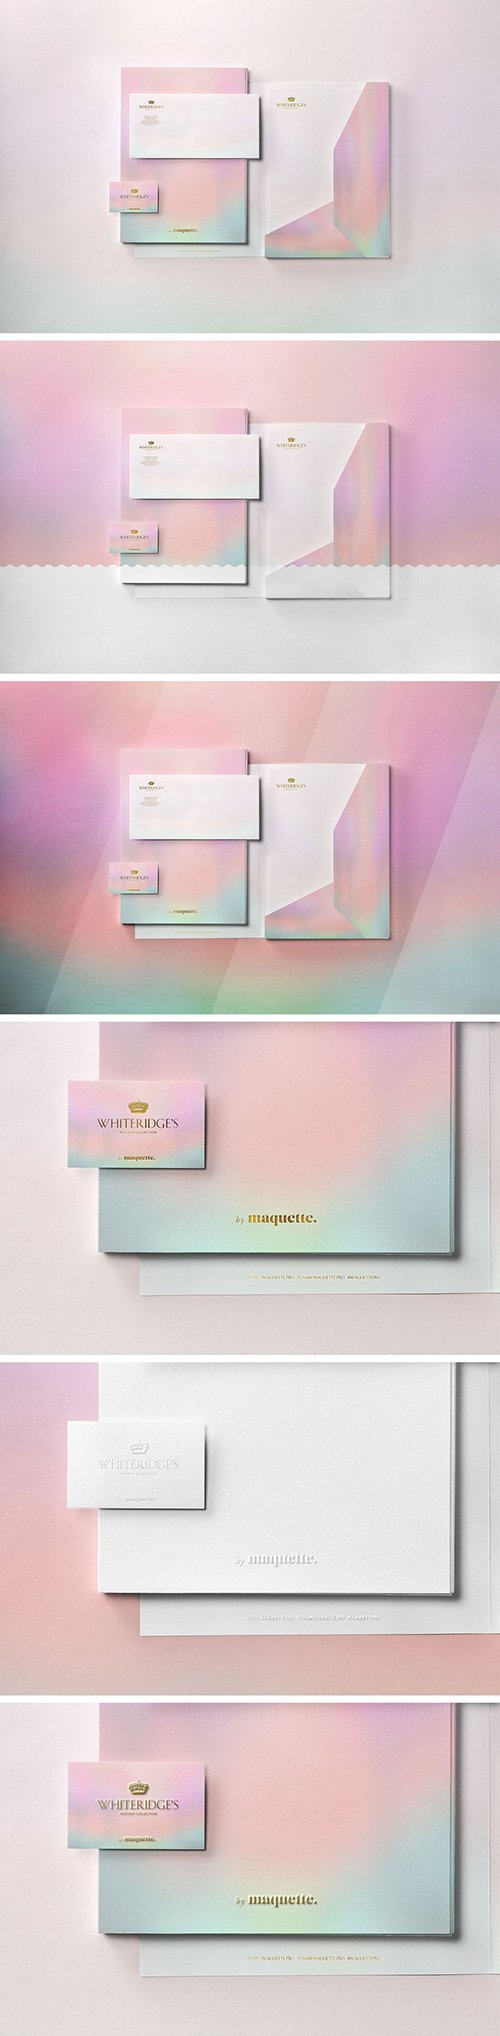 Luxury Gold-Embossed Corporate Stationery Mockup 6 130420254 PSDT